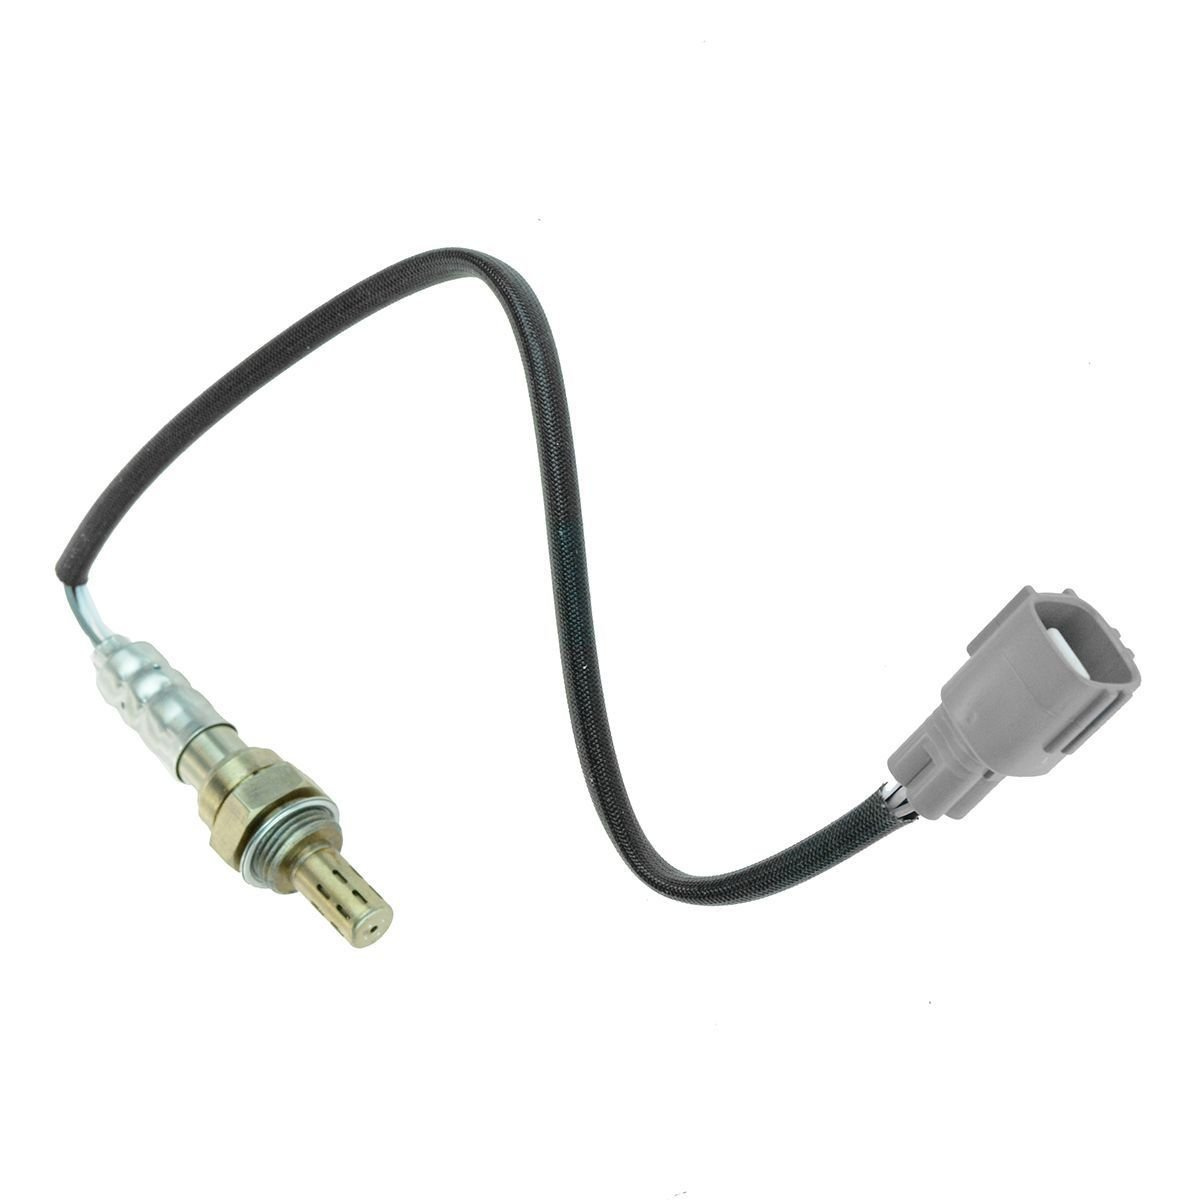 Direct Fit 4 Wire O2 02 Oxygen Sensor New For Lexus Wiring Help 1998 Tercel Ecousticscom Toyota Pontiac Automotive